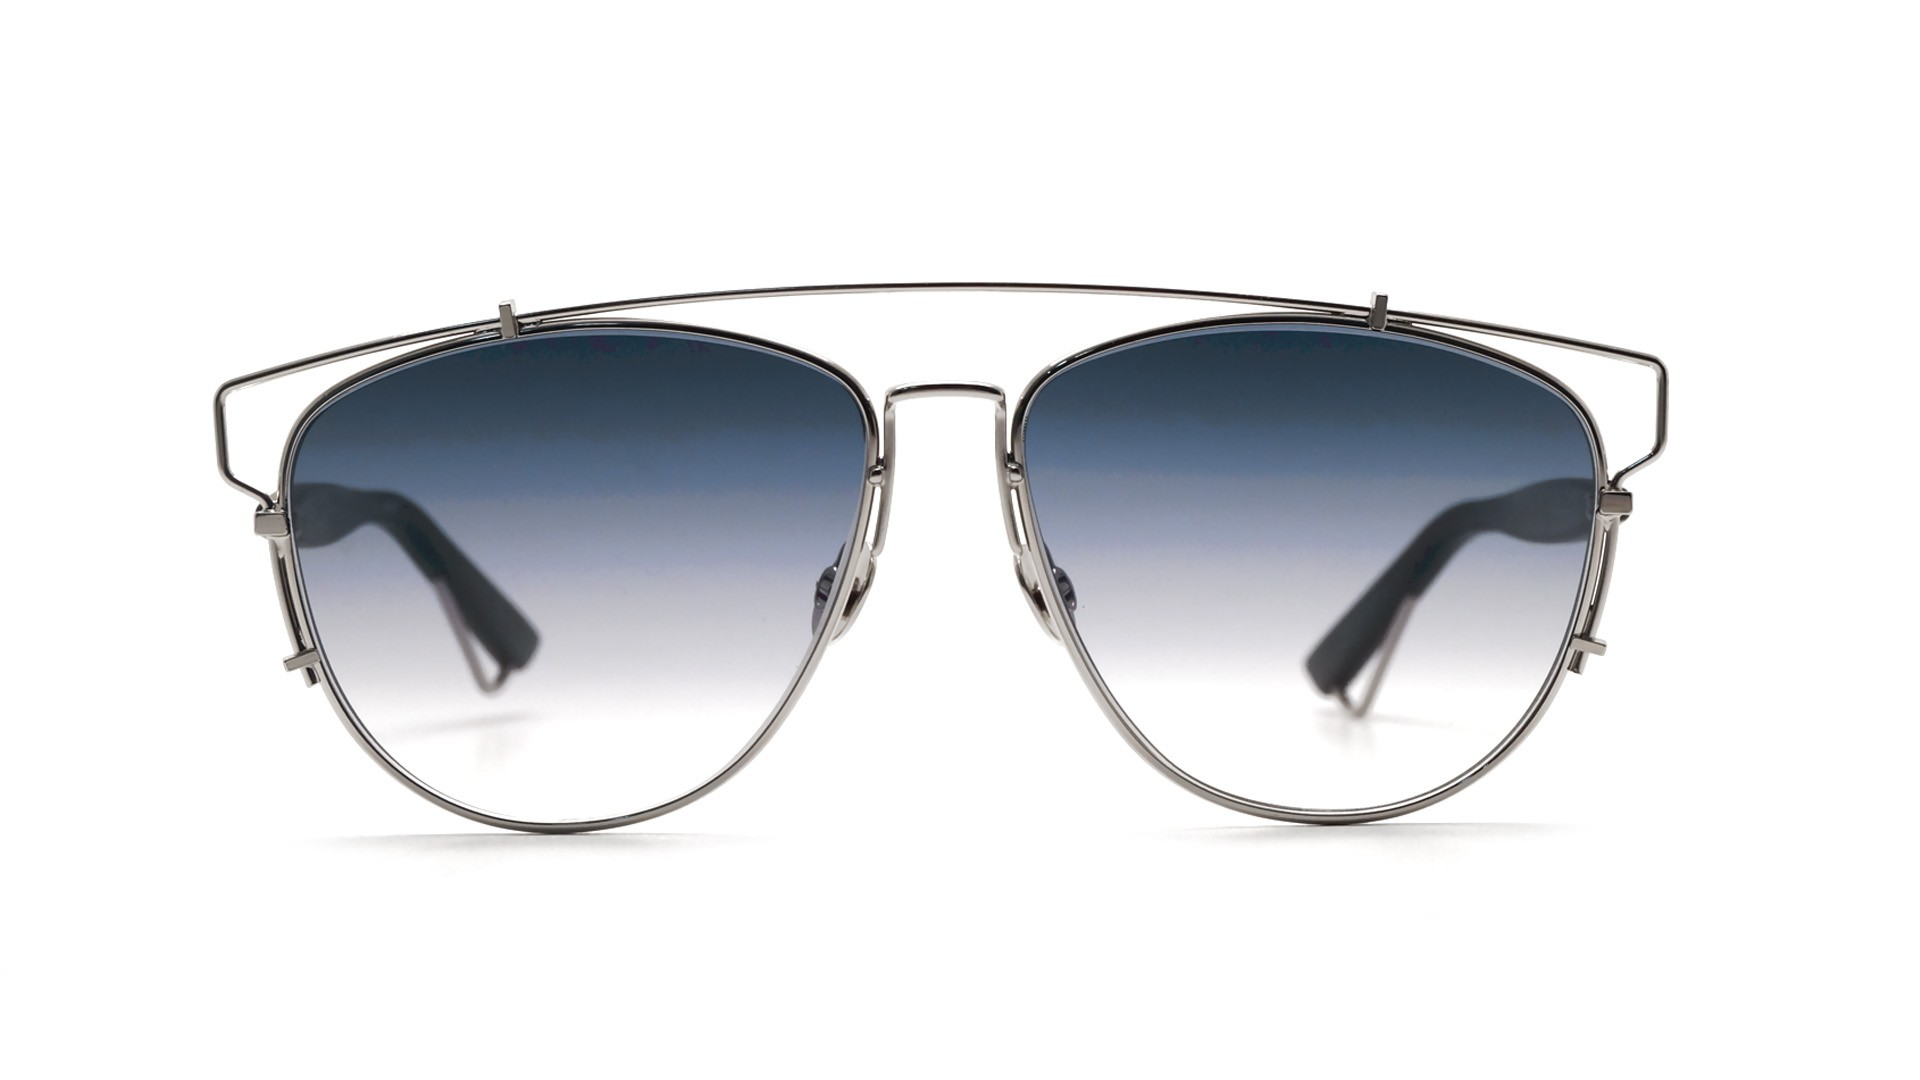 81076e42d52 Sunglasses Dior Technologic Silver 84J84 57-14 Medium Gradient